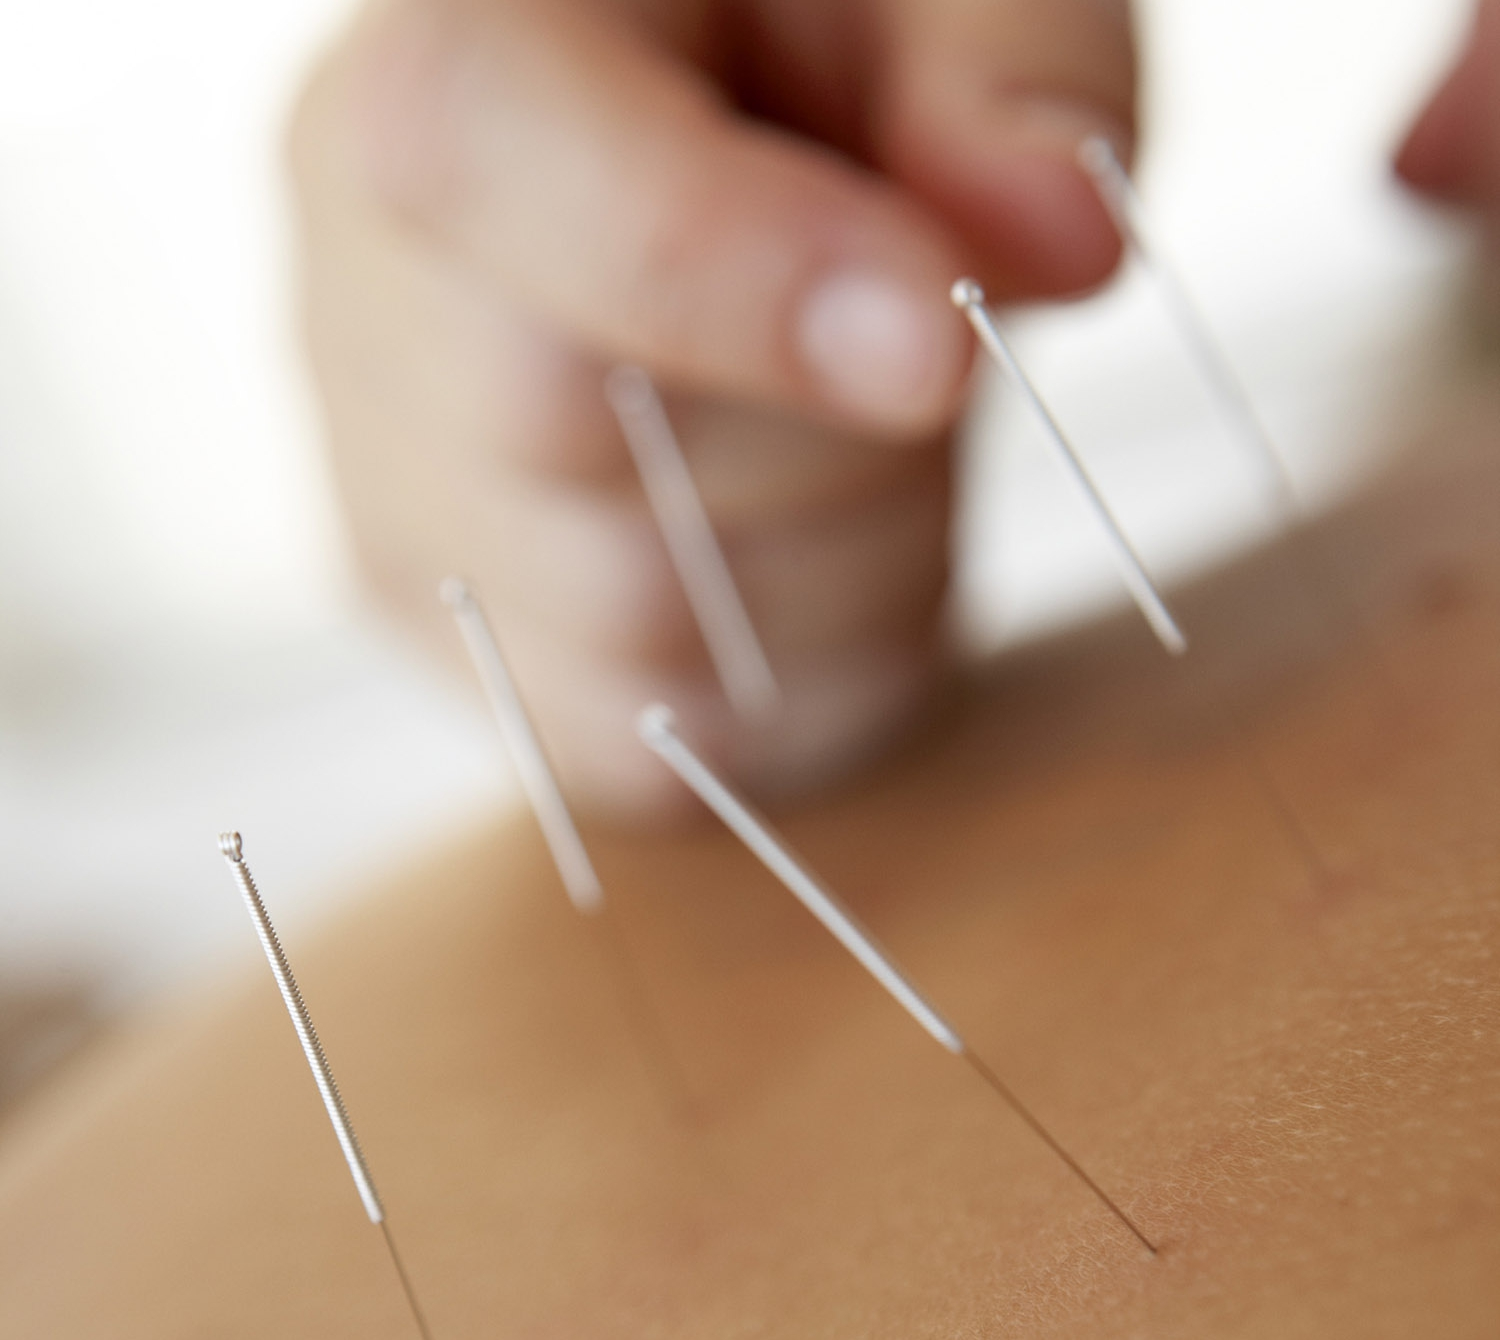 Acupuncture Schools In Texas